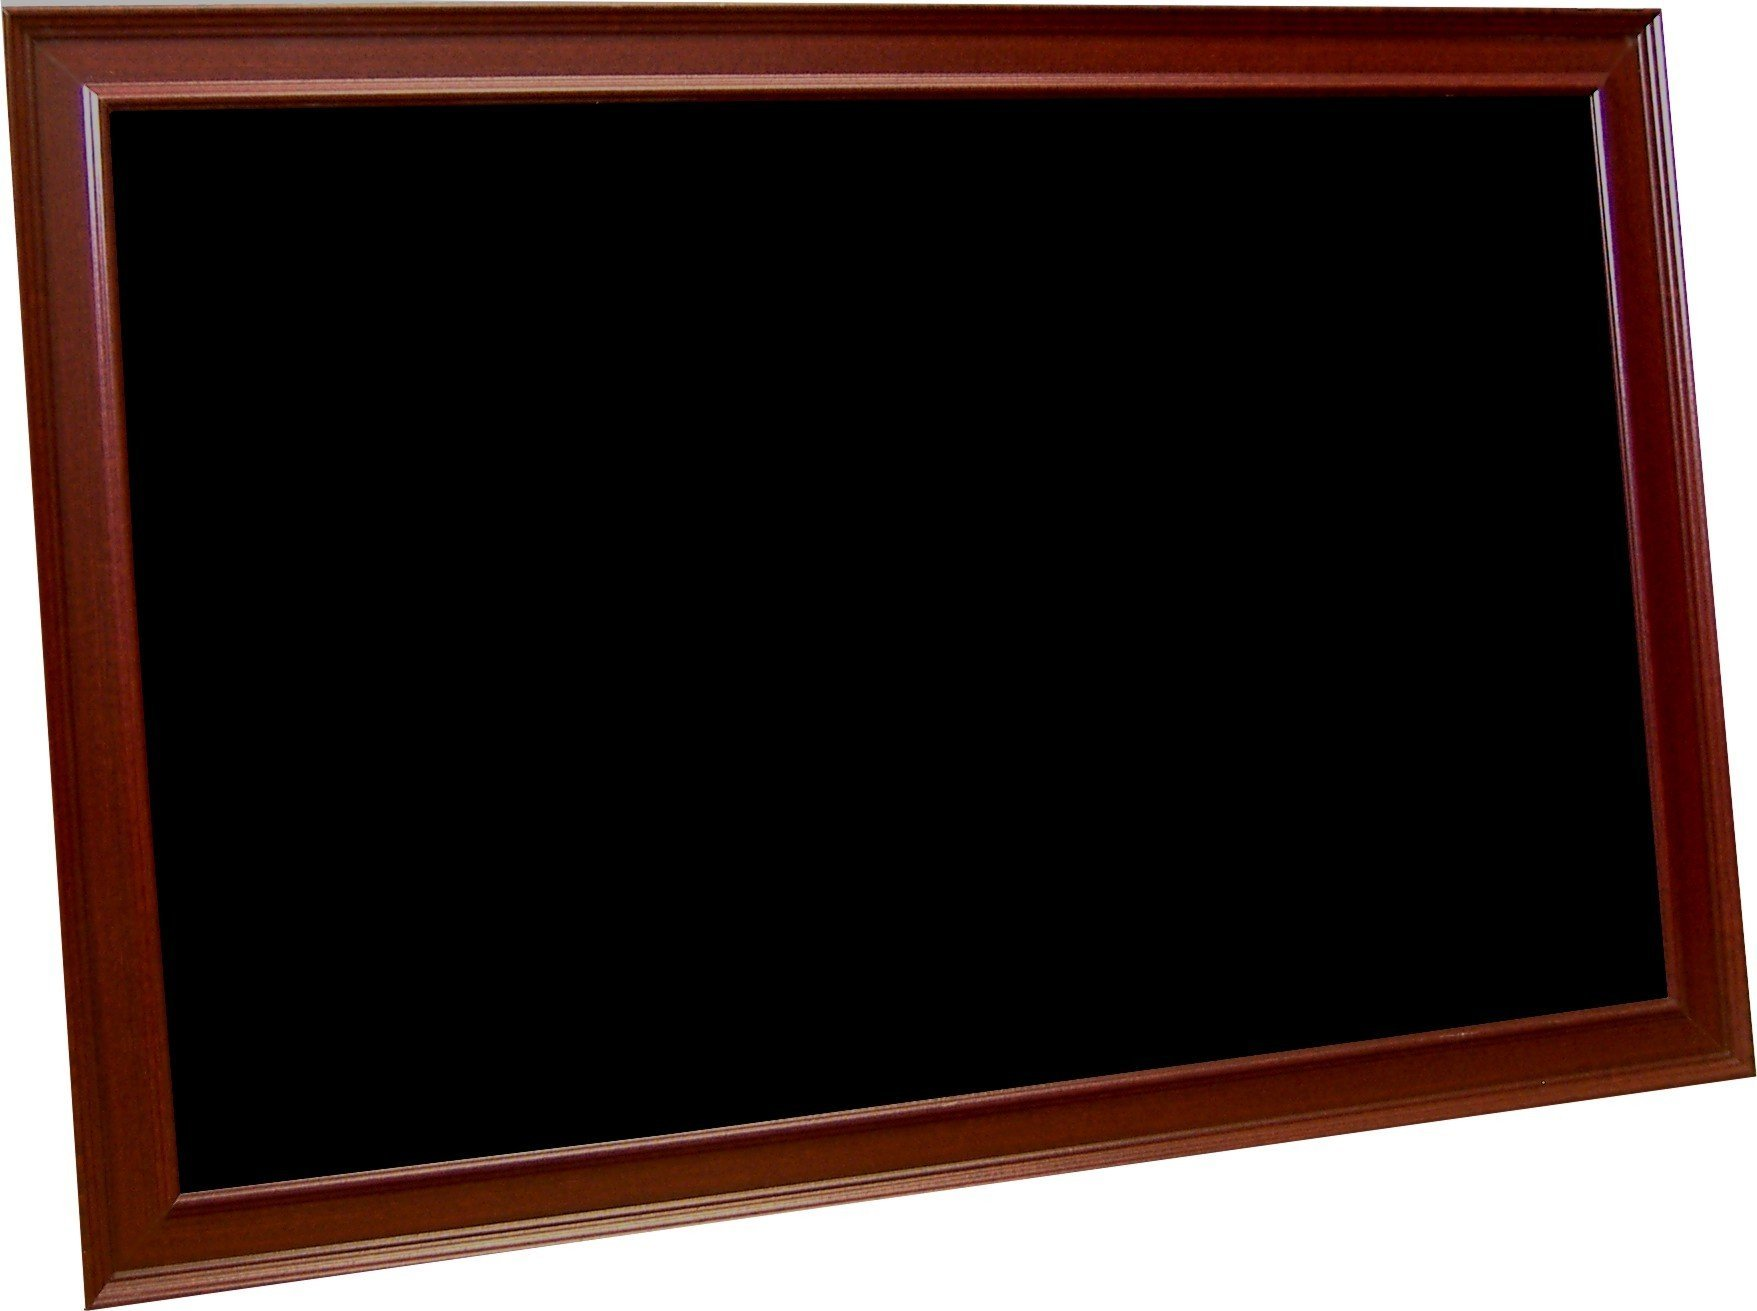 billyBoards 36X60 chalkboard. Red mahogany frame finish. 12 inch self stick chalk tray included. Wood composite writing panel- black. 2 inch wide MDF frame.